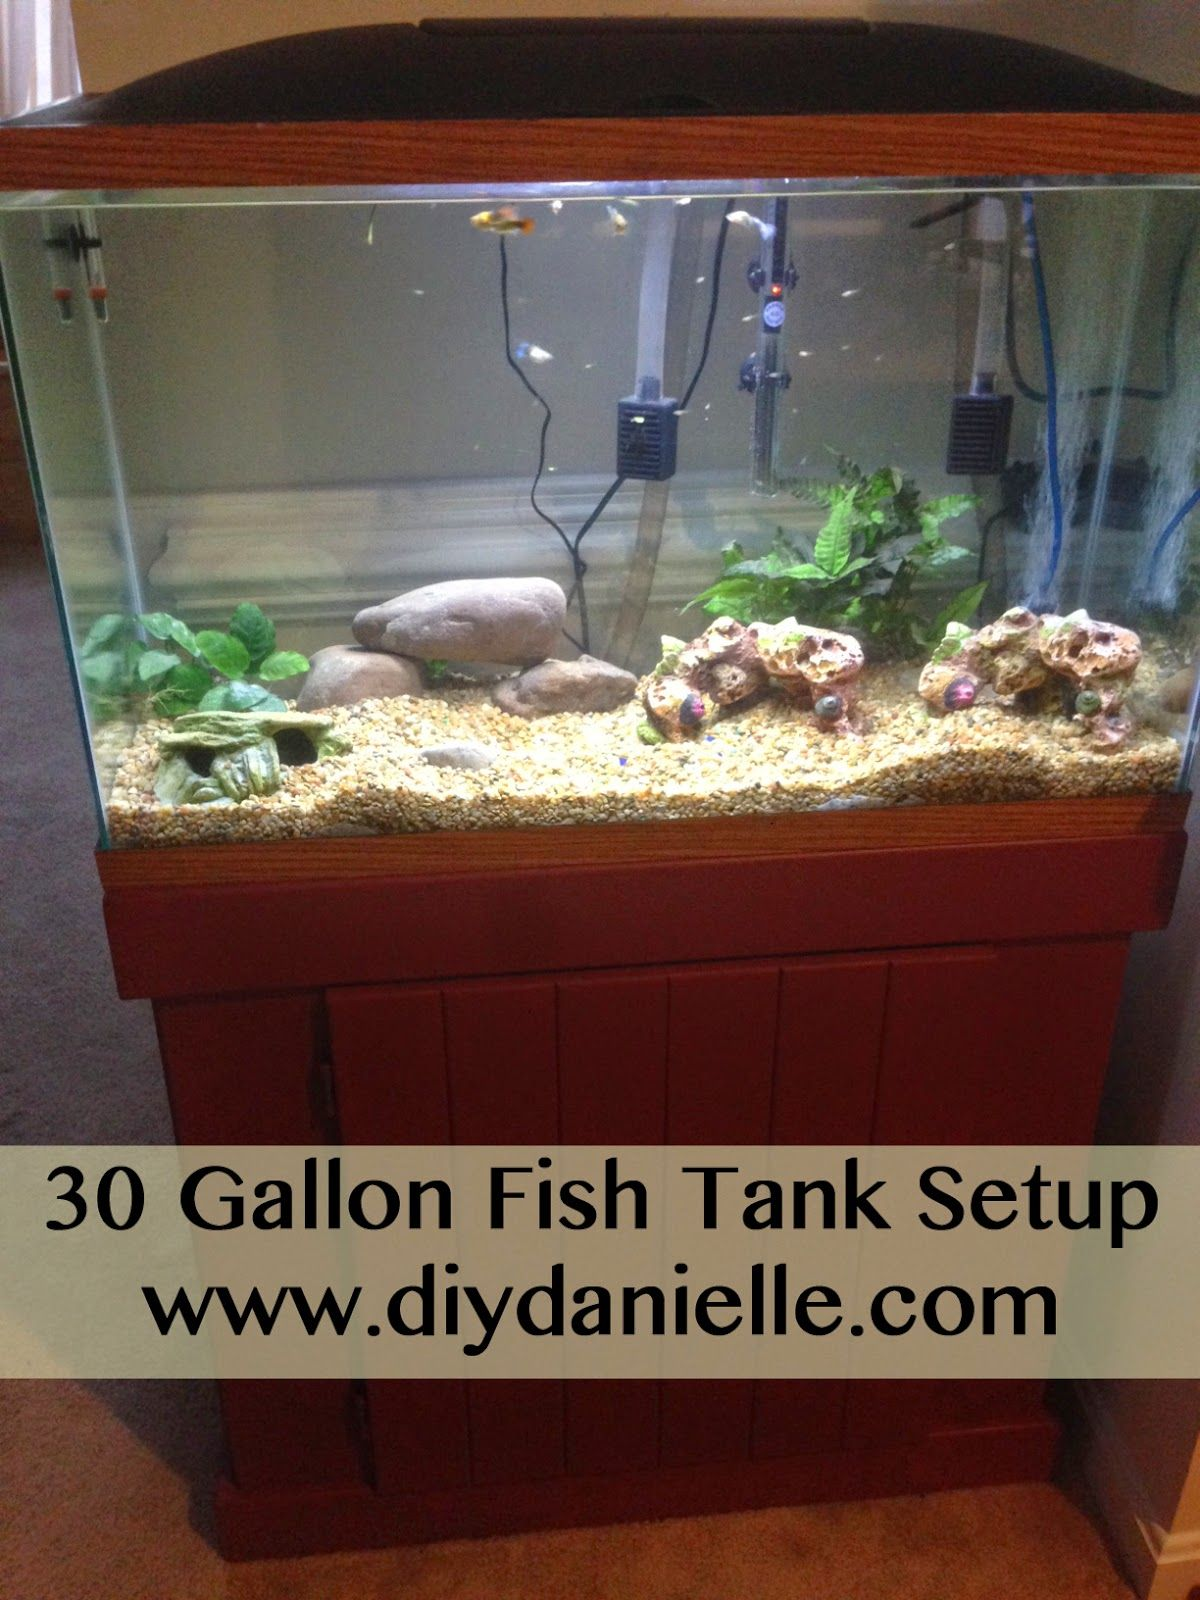 30 Gallon Tank Size